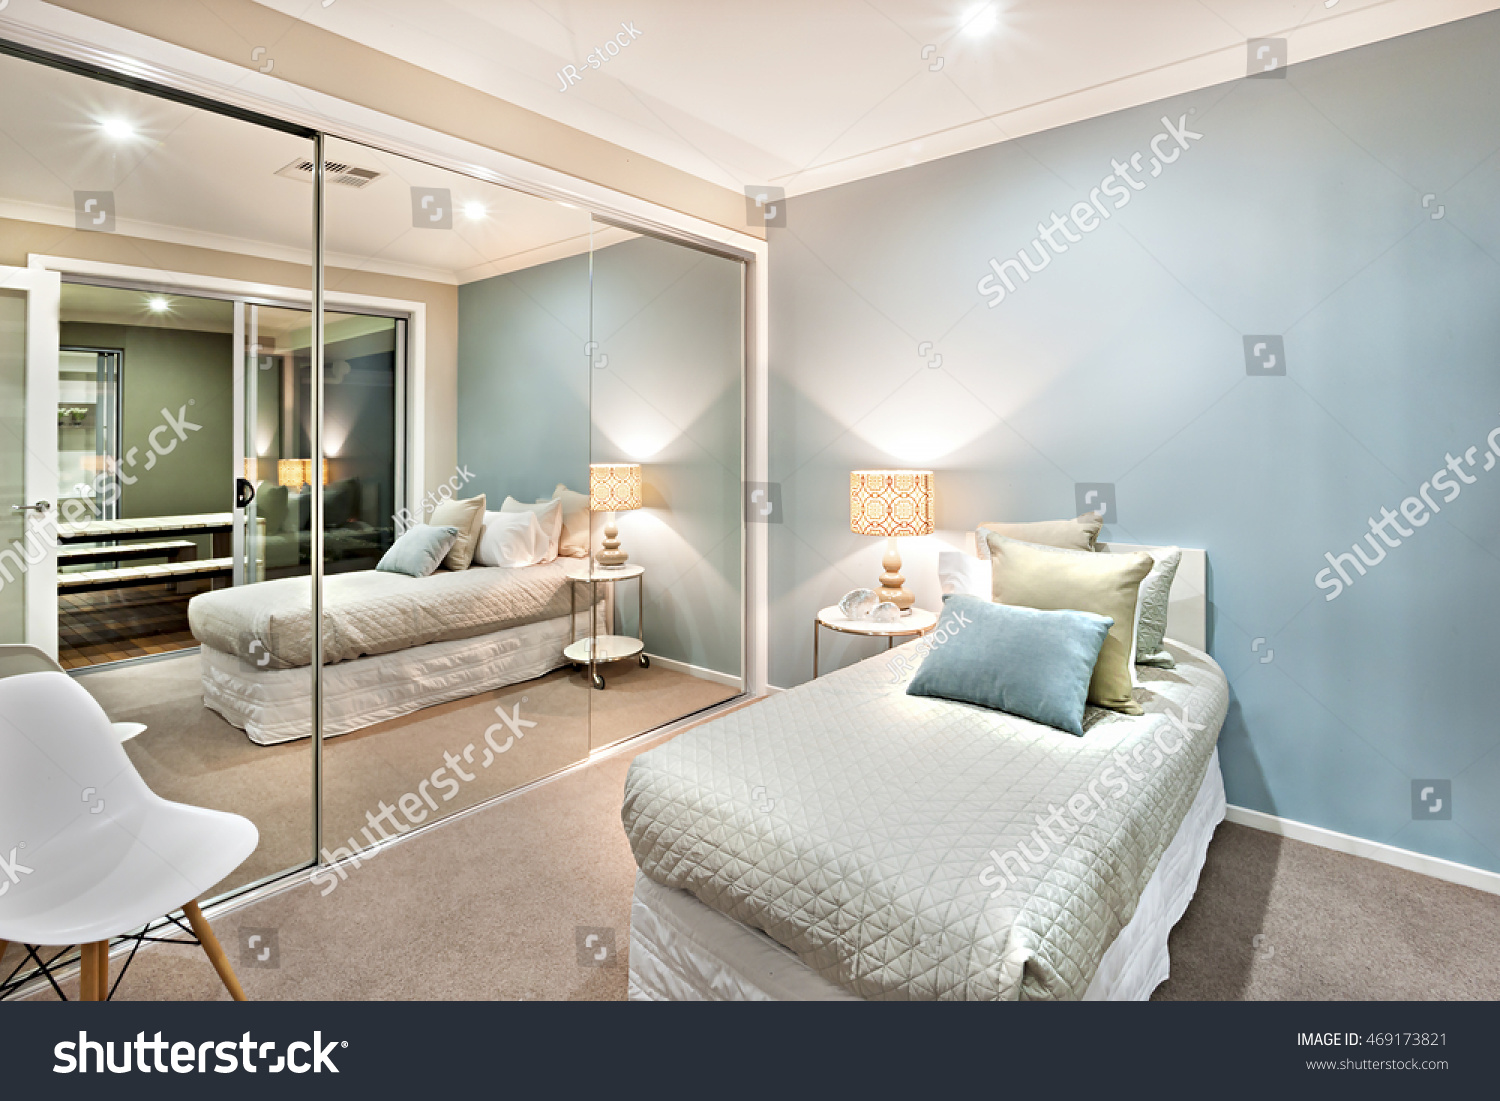 Modern Classic Bedroom Walls Light Blue Stock Photo (Download Now ...